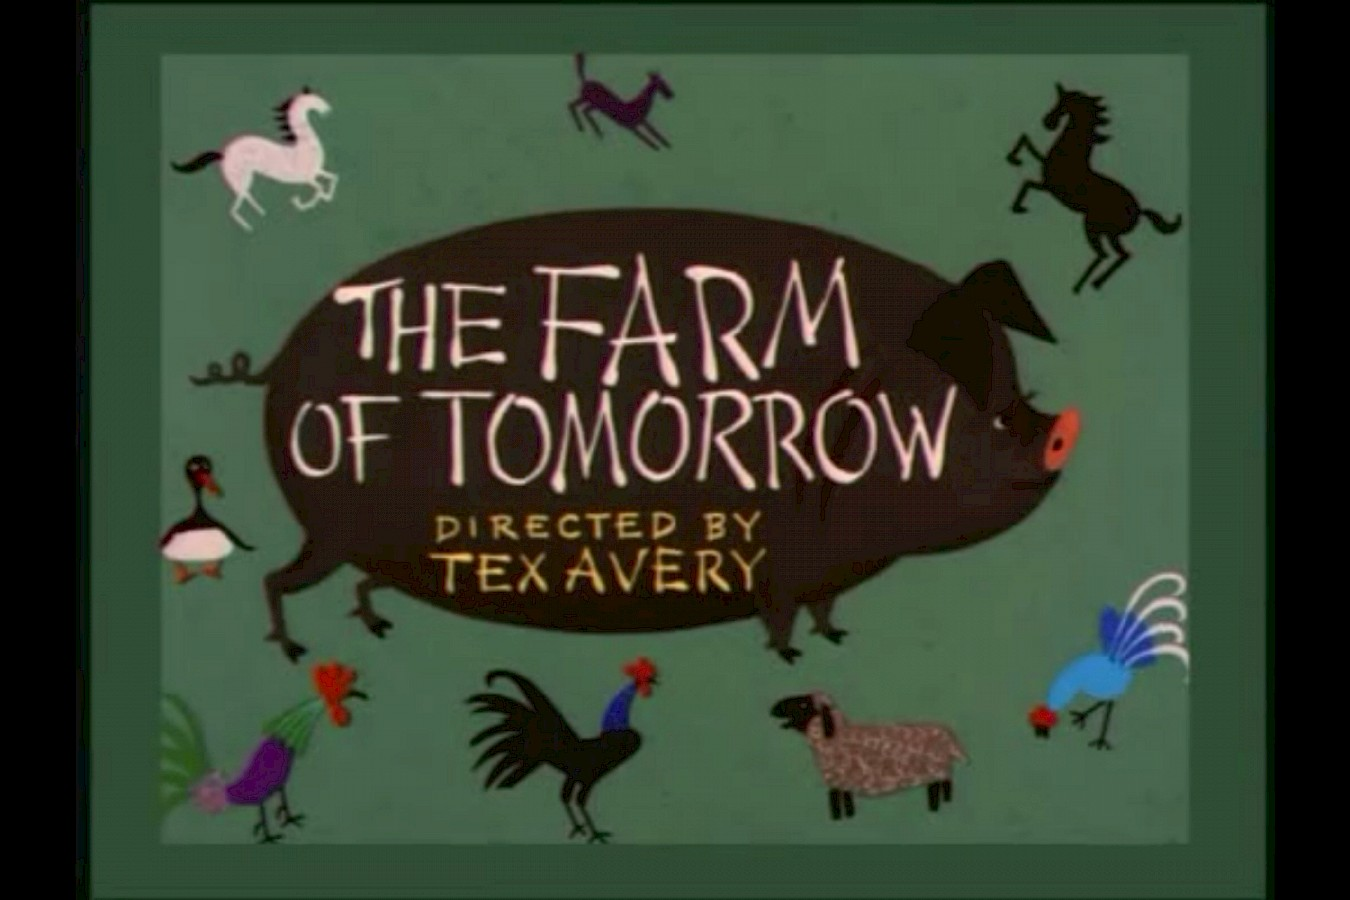 Tex Avery's Vision of the Future of Farming Over 60 Years Ago